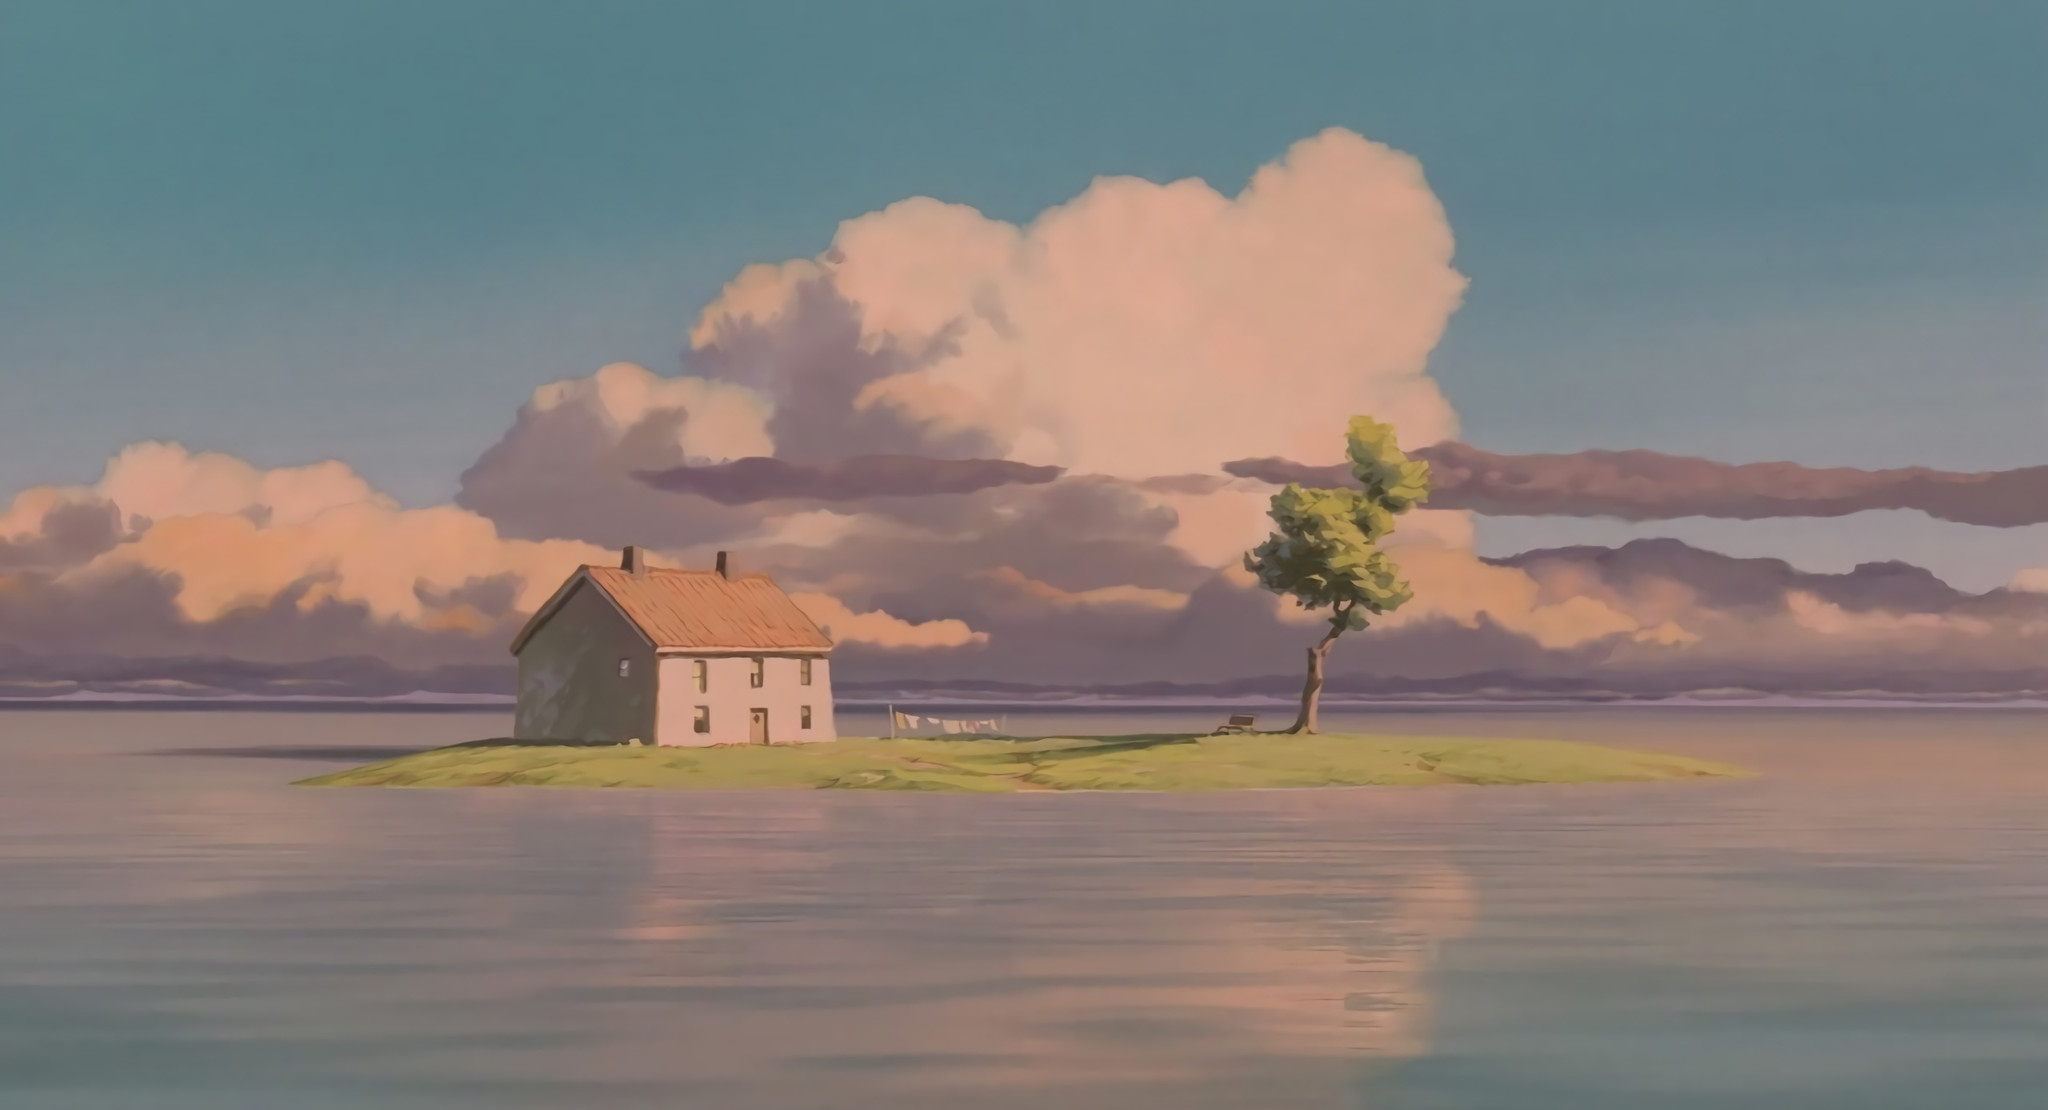 Some HD wallpapers from Spirited Away's train scene. Pure serenity. : anime